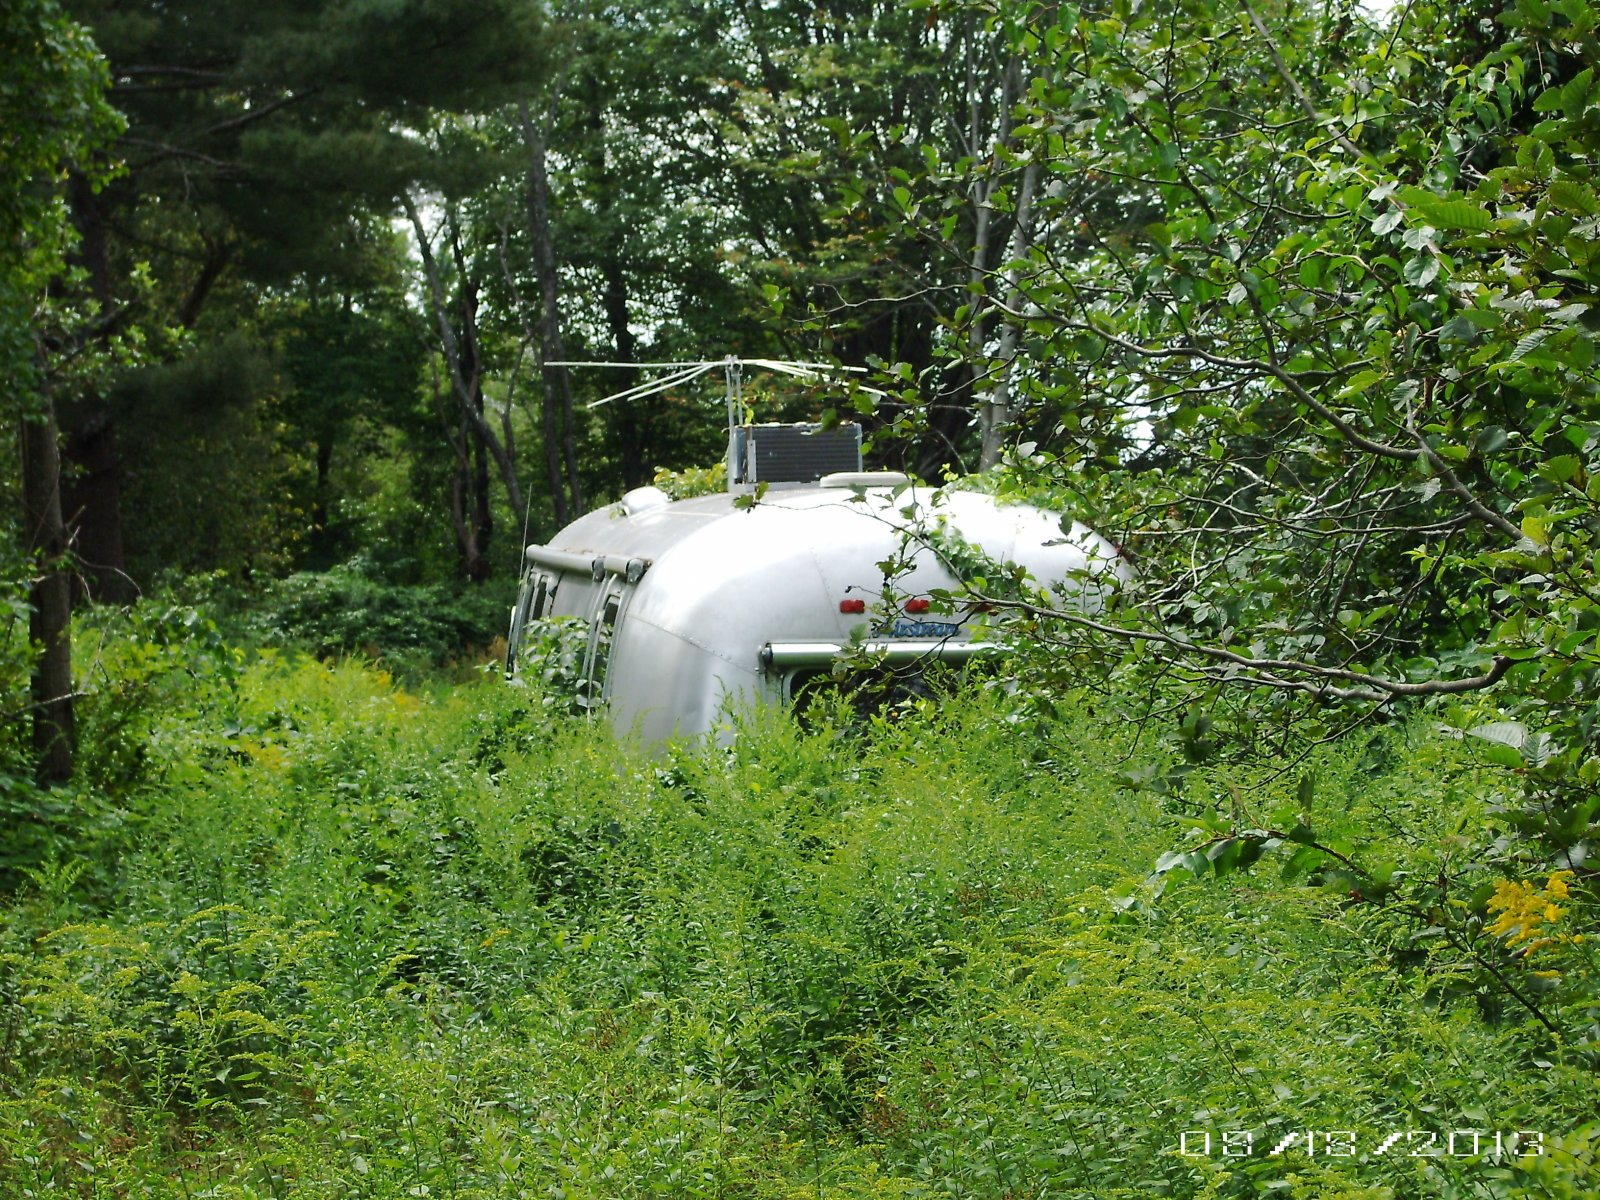 Click image for larger version  Name:Airstream in the weeds 001.jpg Views:299 Size:684.5 KB ID:194525